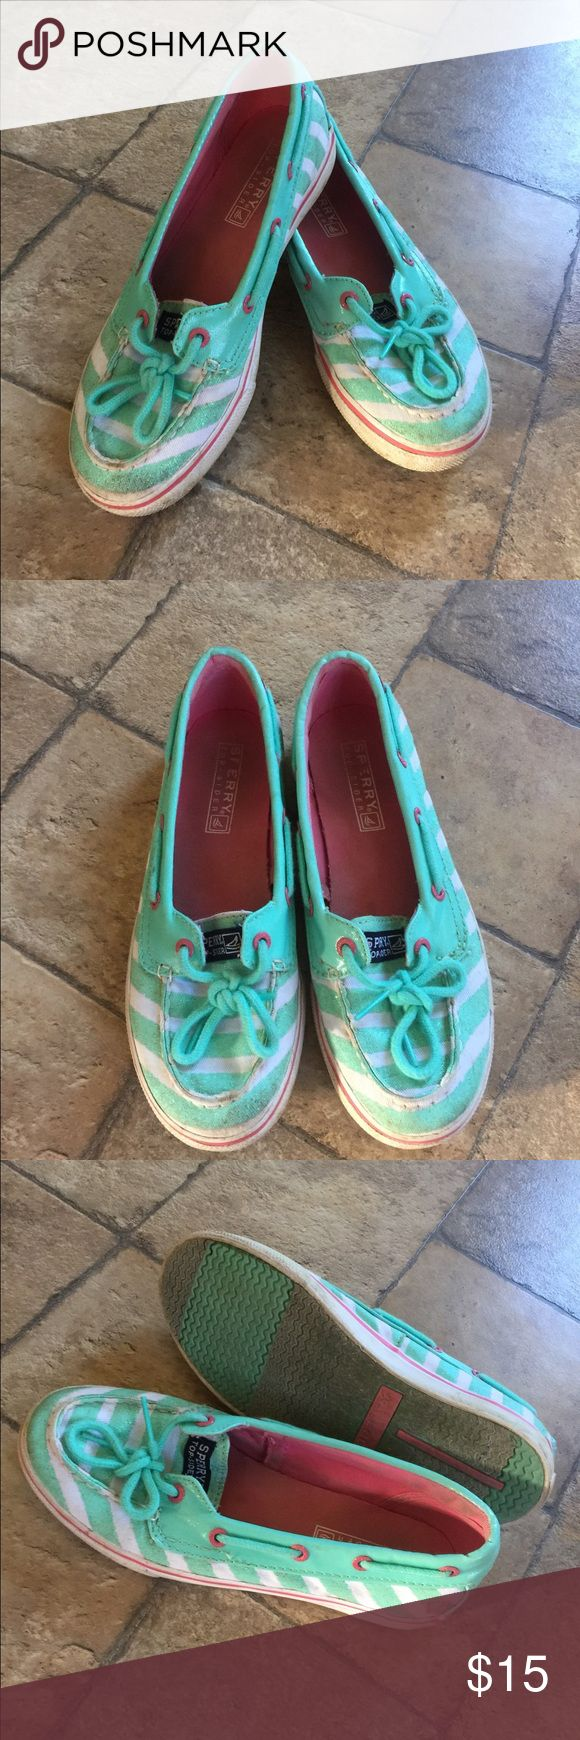 Girls Sperry Shoes Sz 2.5 Have been worn a few times,but in nice condition.need a lite cleaning on tips (not bad/just wanted to let you know) .sz 2.5 Sperry Shoes